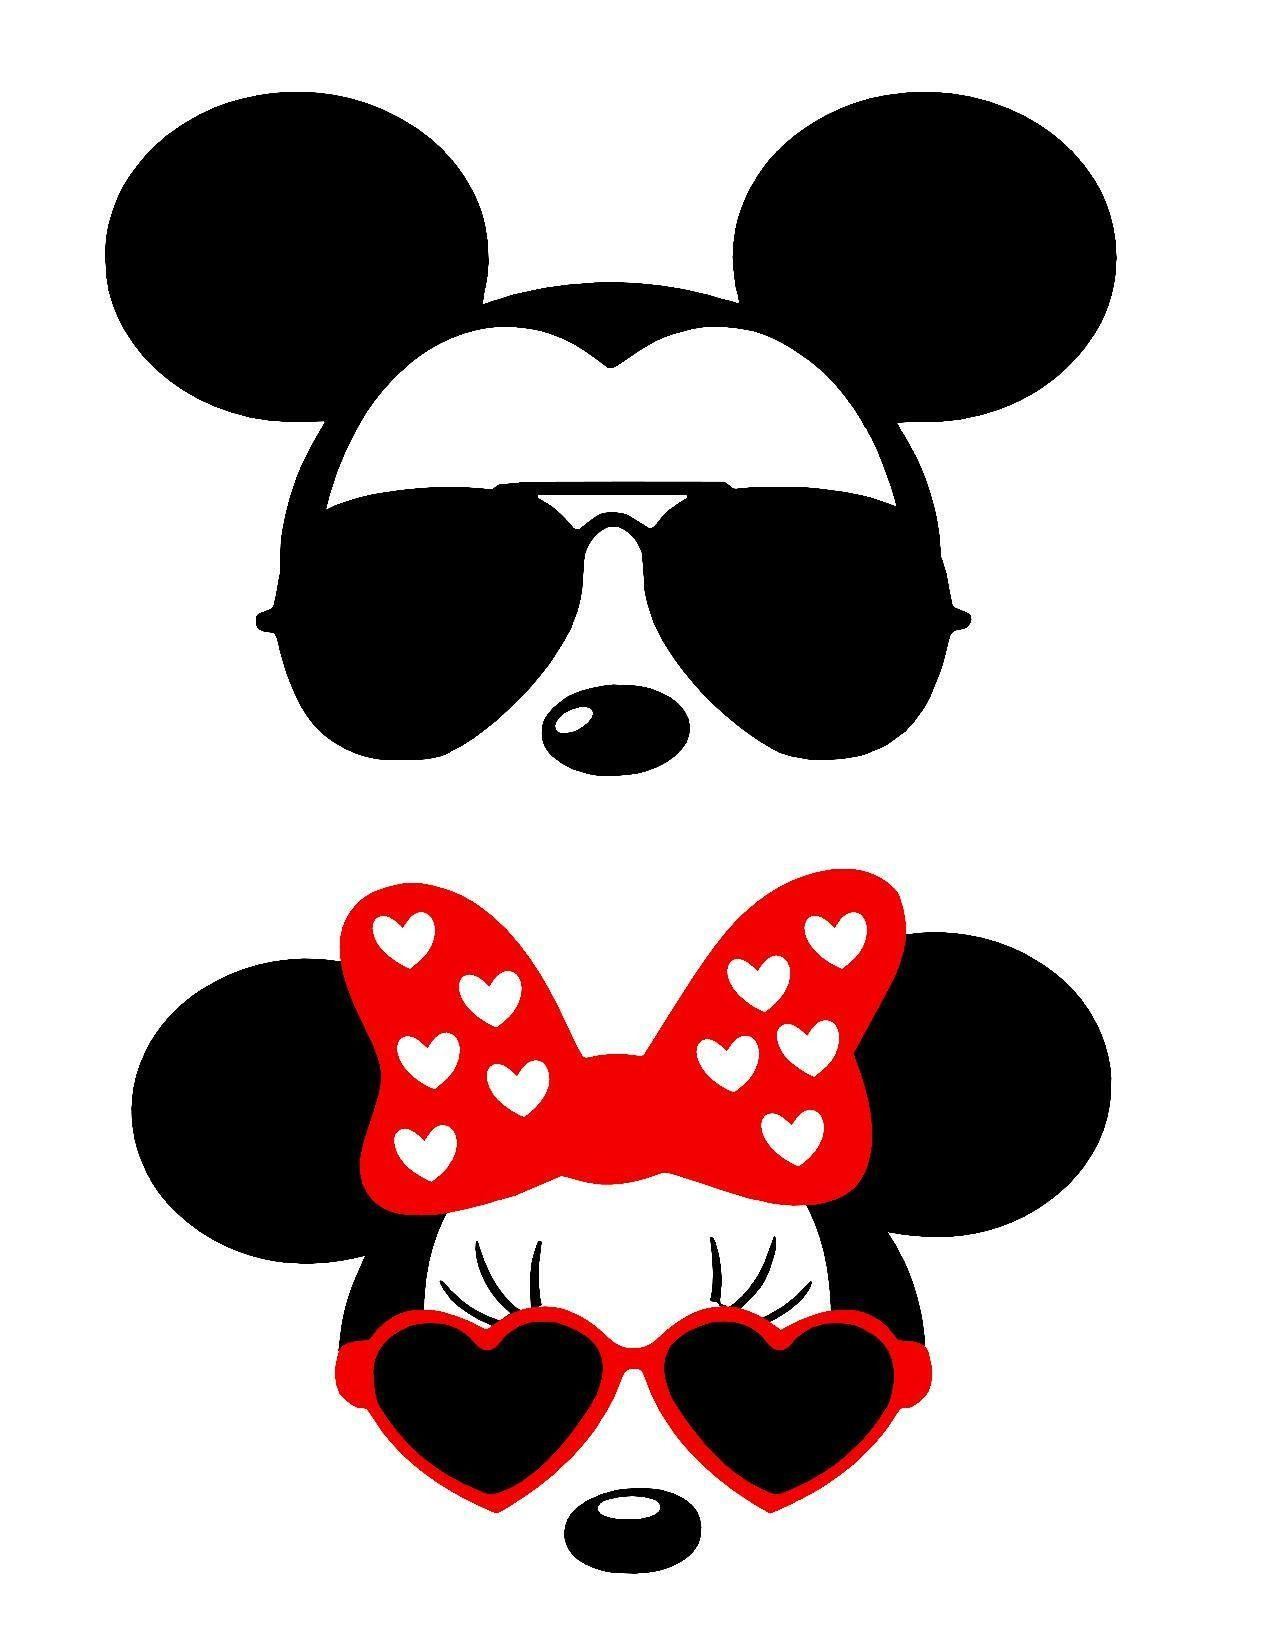 827c1eec2 Mickey Minnie sunglasses